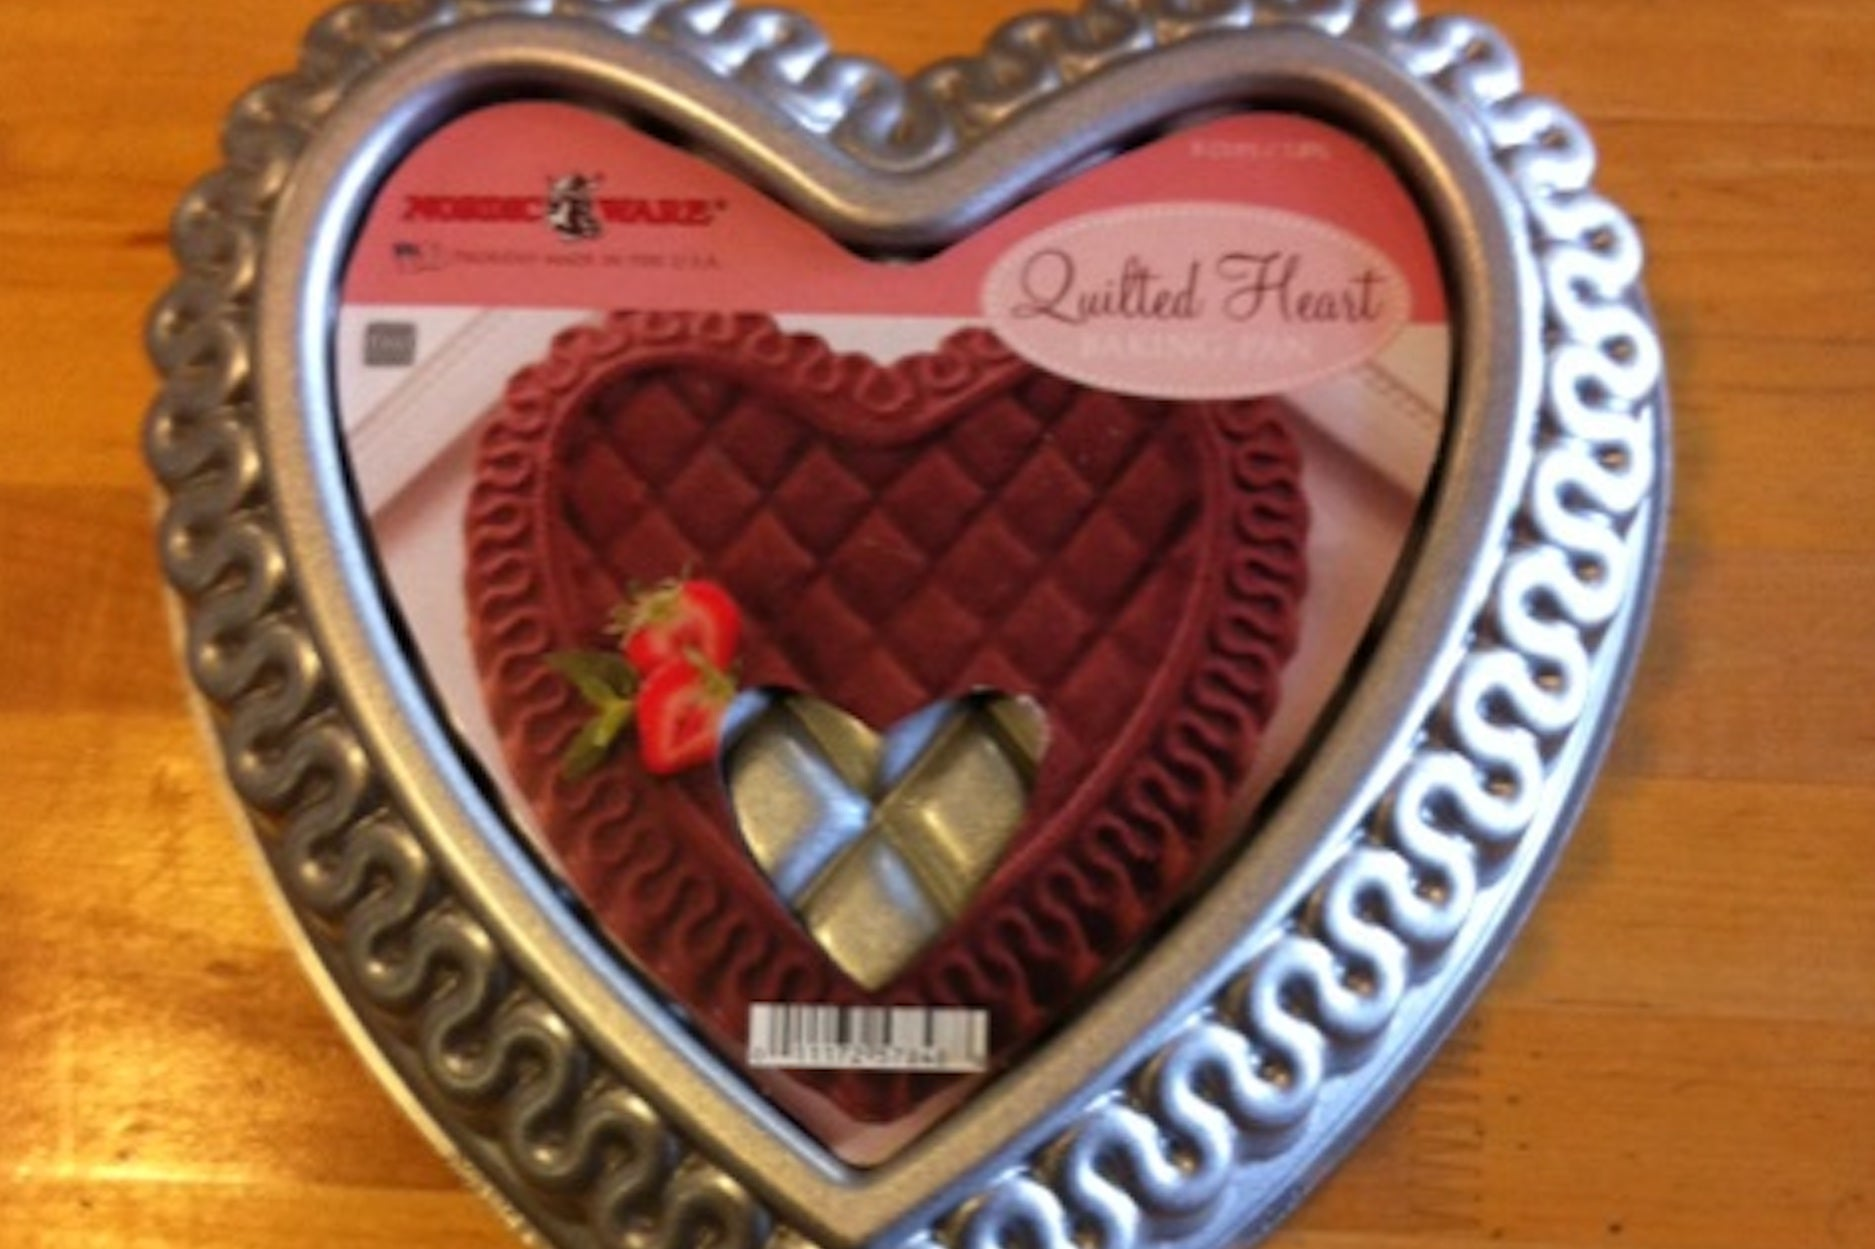 Quilted Heart Bundt Cake Pan